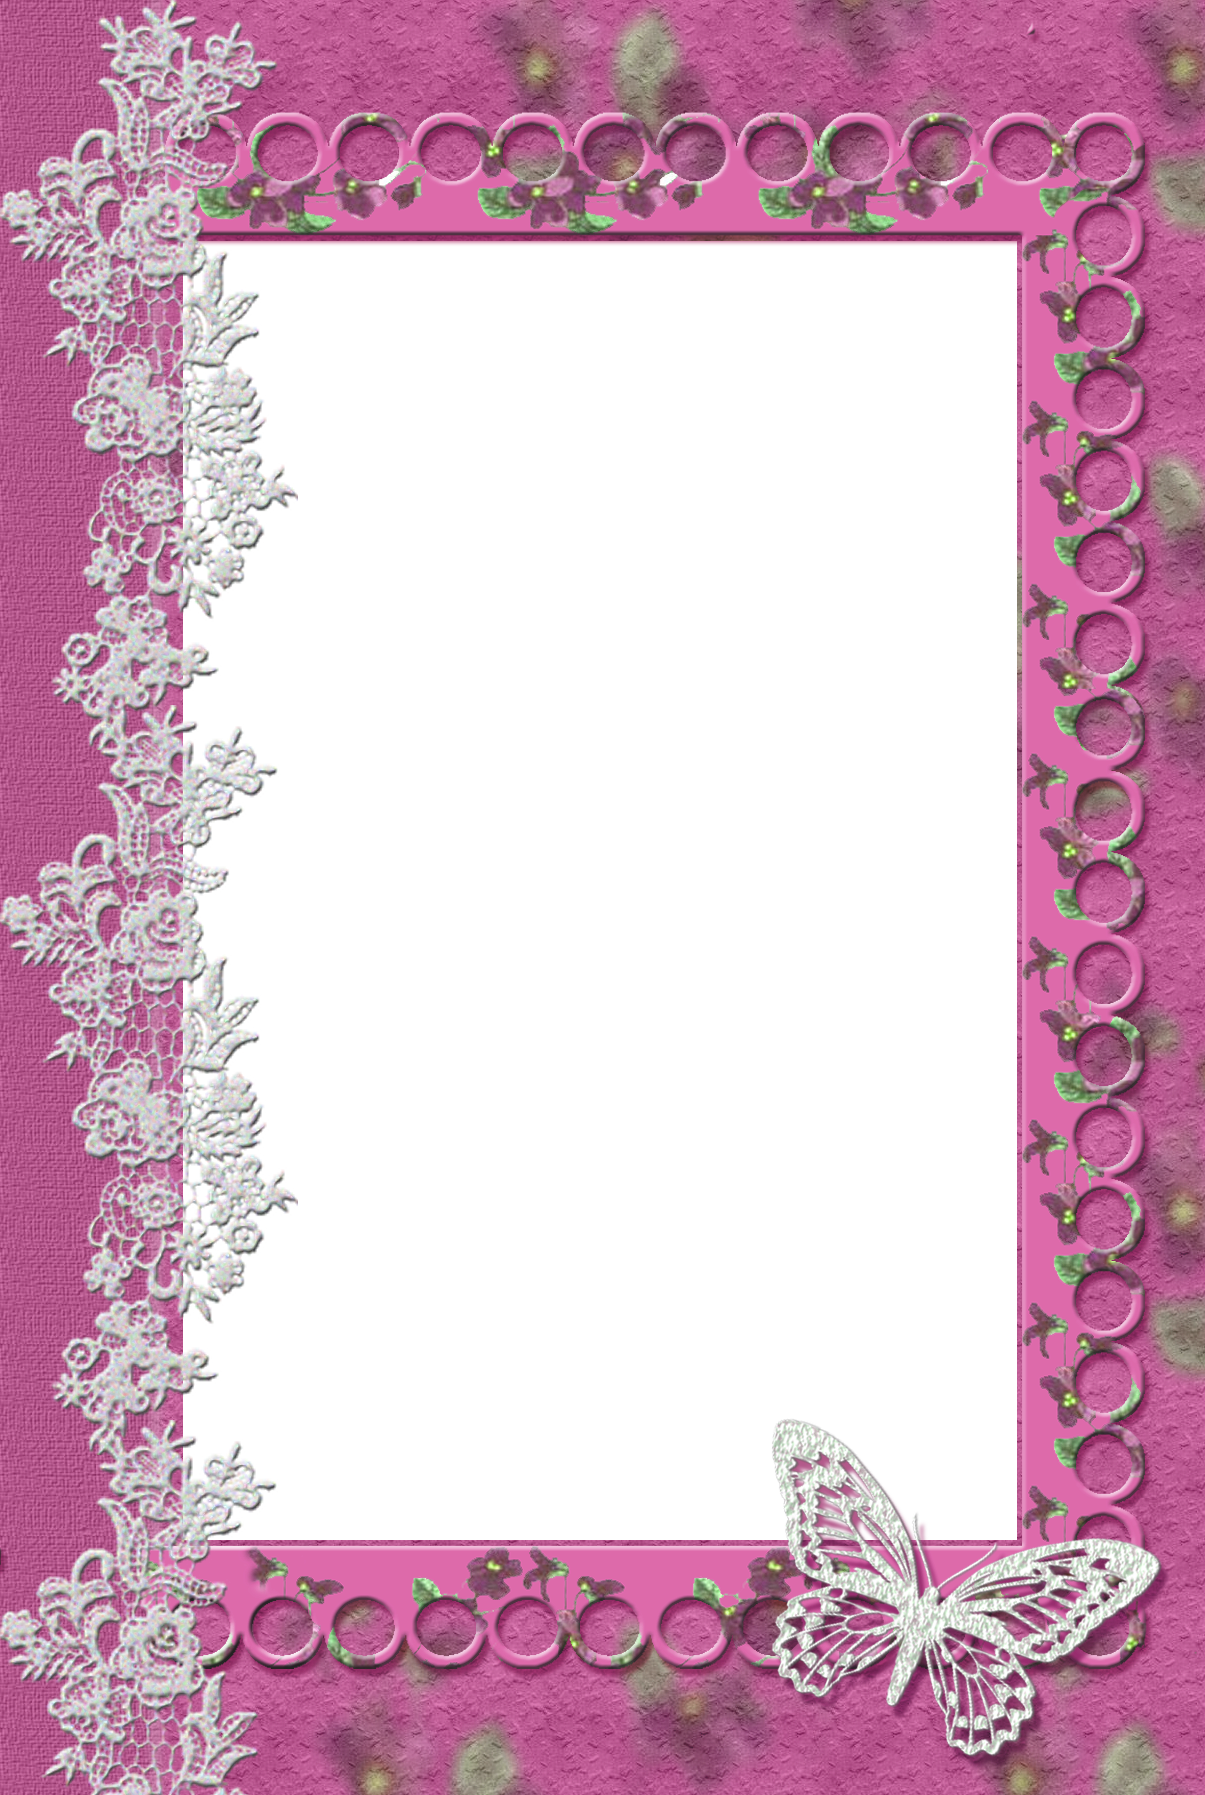 Lace clipart butterfly. Pink transparent frame with